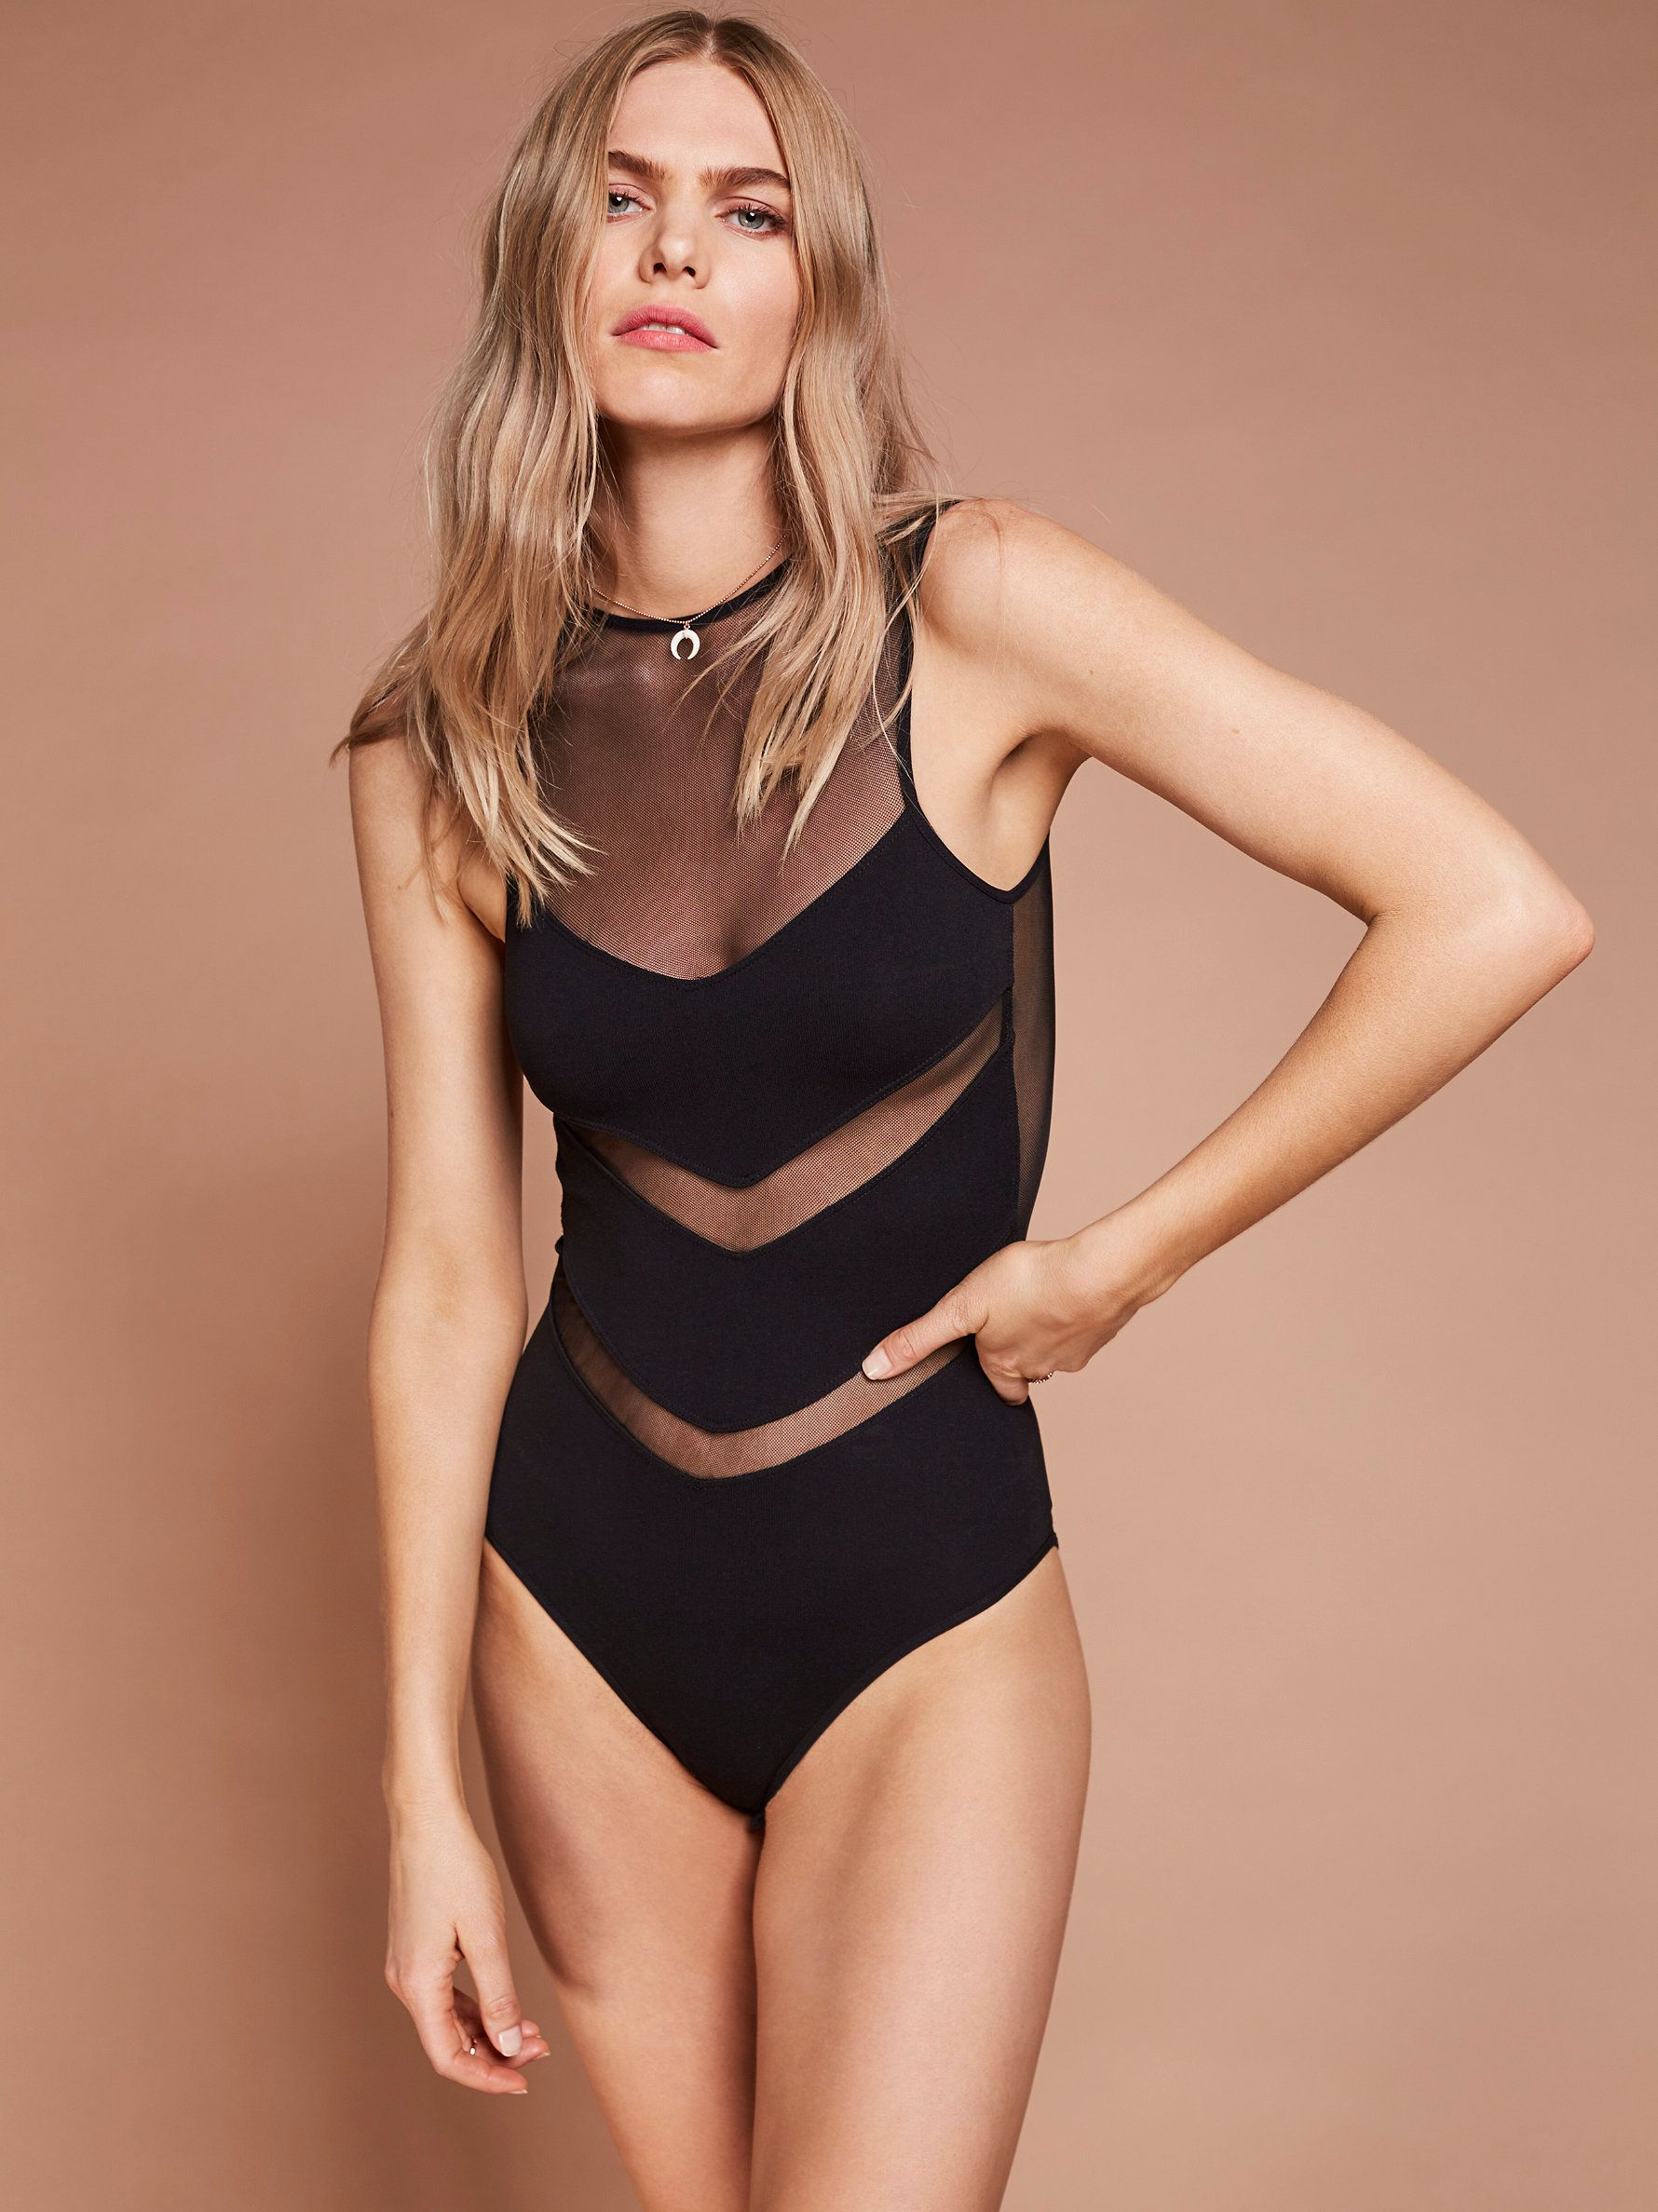 How to american wear apparel mesh bodysuit recommend to wear in winter in 2019